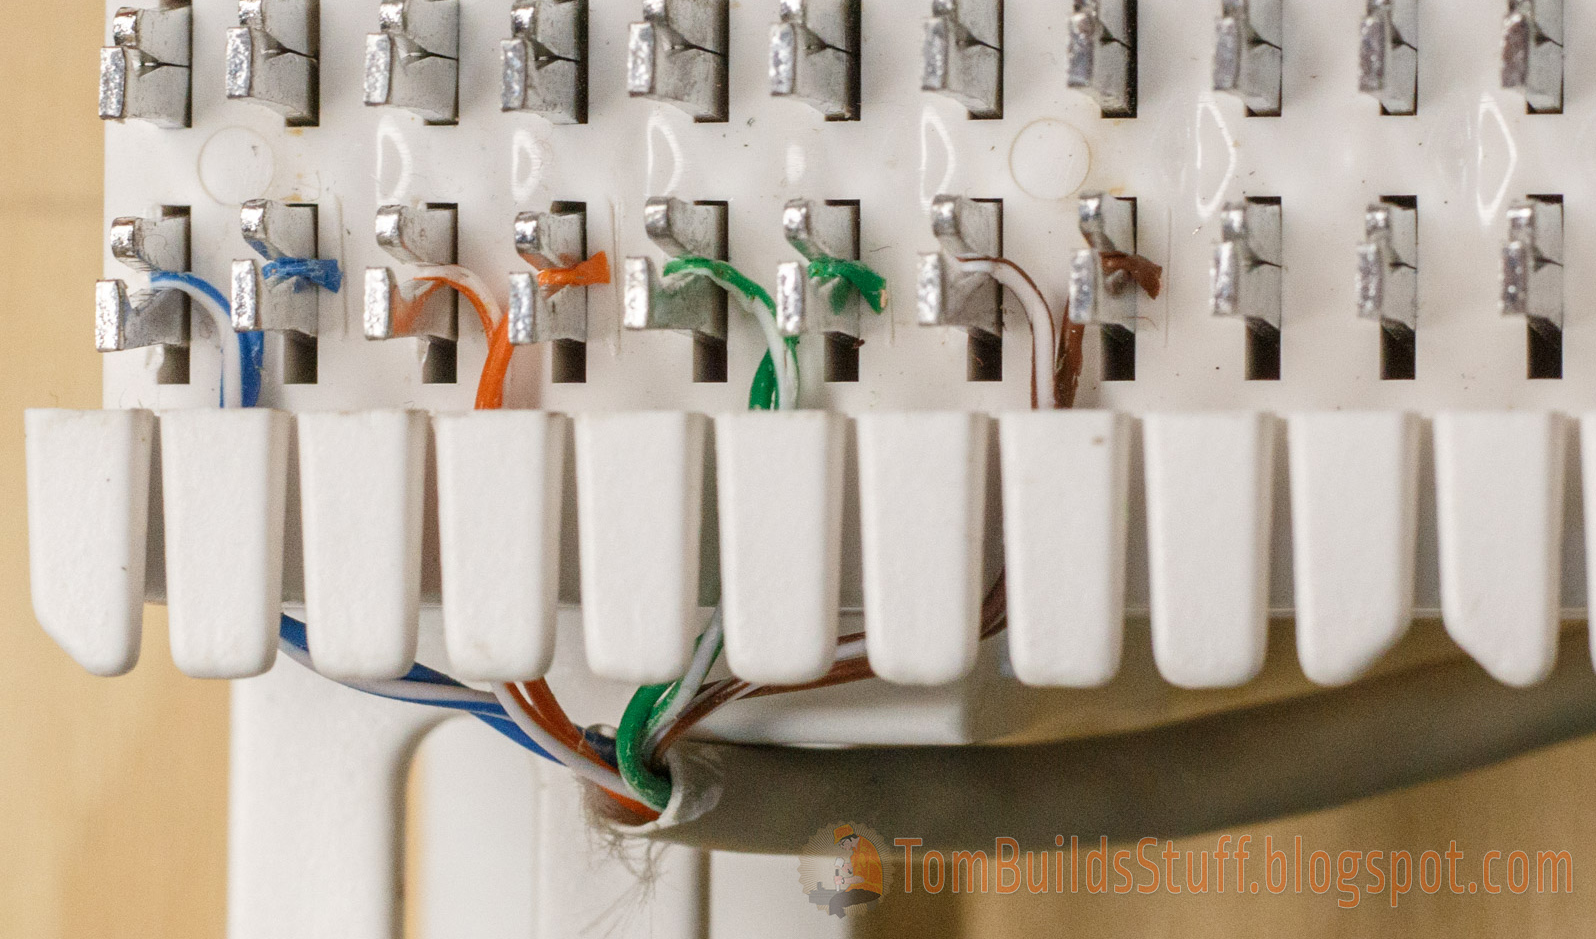 medium resolution of the order of wires is white blue blue white orange orange white green green white brown brown it s easier for me to just remember blue orange